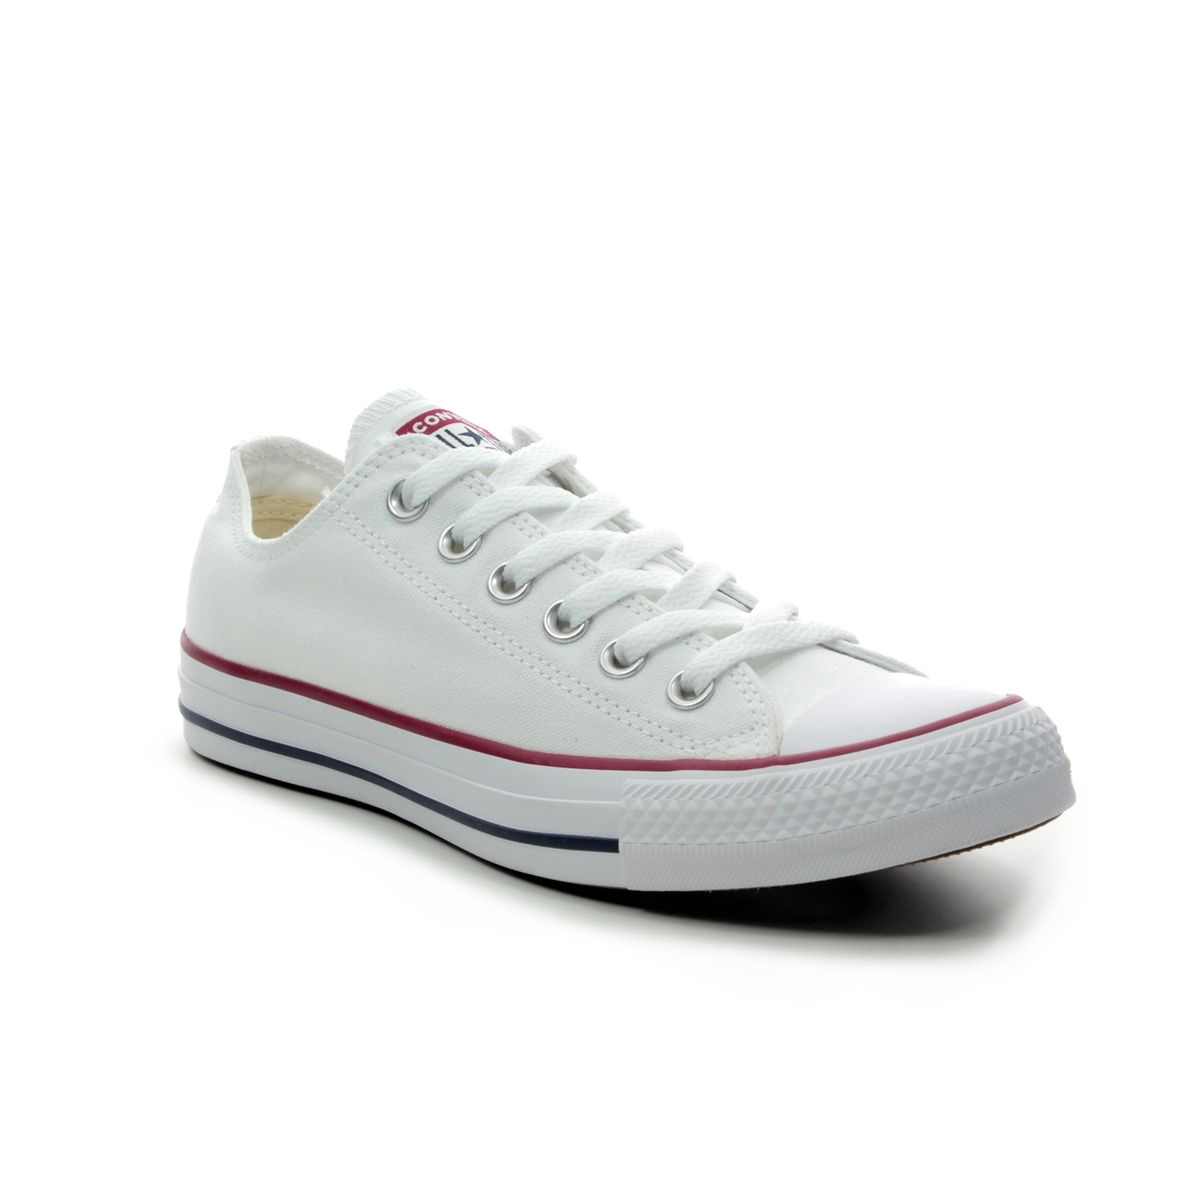 4a3cb353c5a5 Converse Trainers - White - M7652C All Star Ox Classic